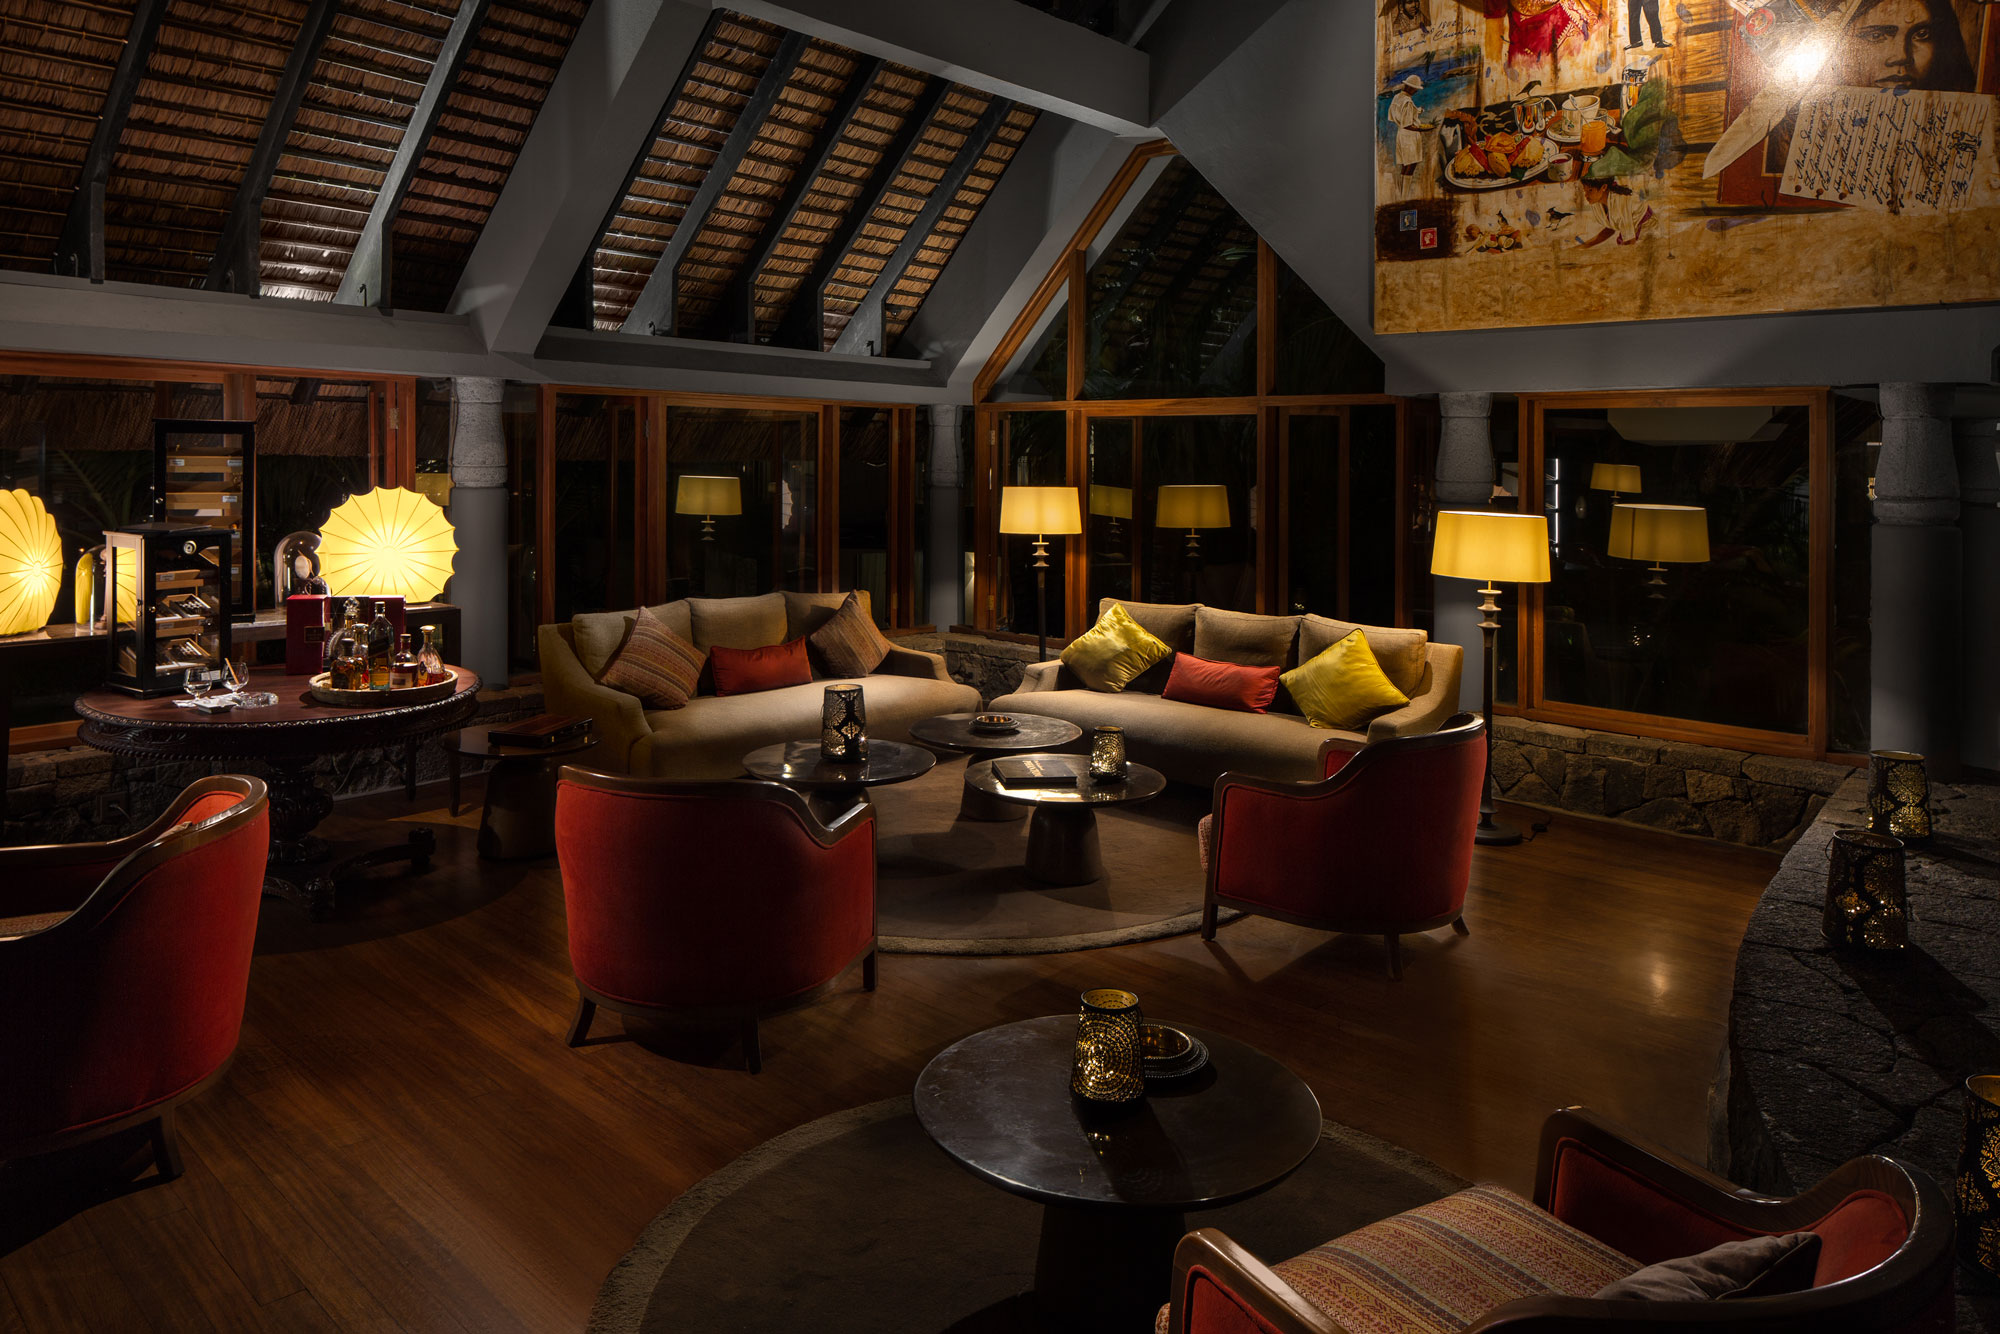 Cigar Lounge Luxury Hotel Photography by Adrian Kilchherr